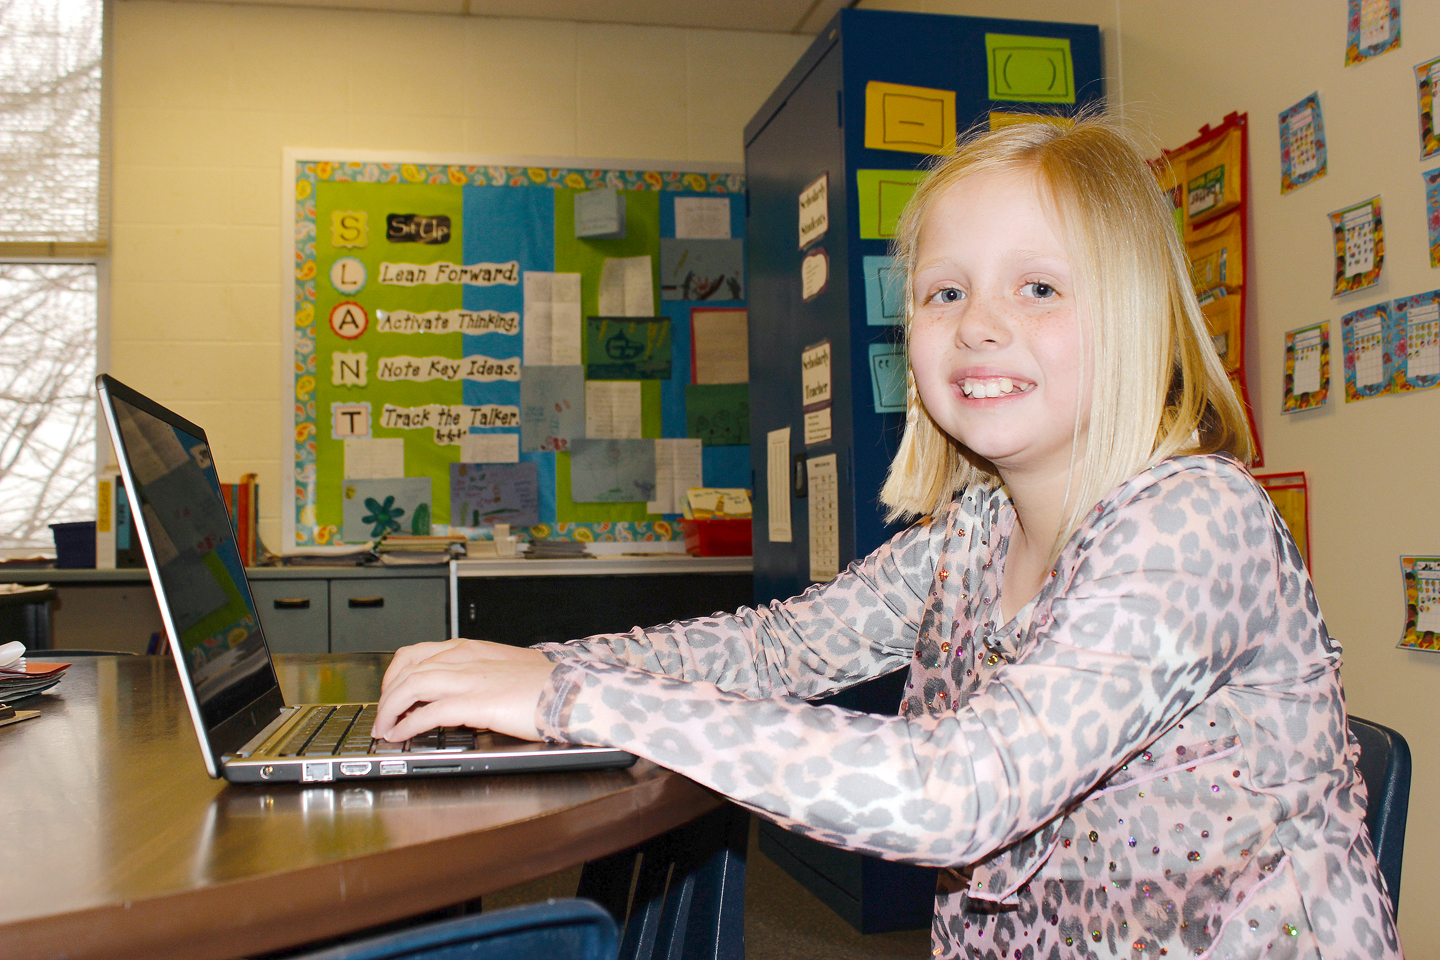 Park Hill School District student Jessica Binckley, 11, used a laptop provided by the District to create an award winning video about childhood obesity. SARA LOVELACE/Citizen photo